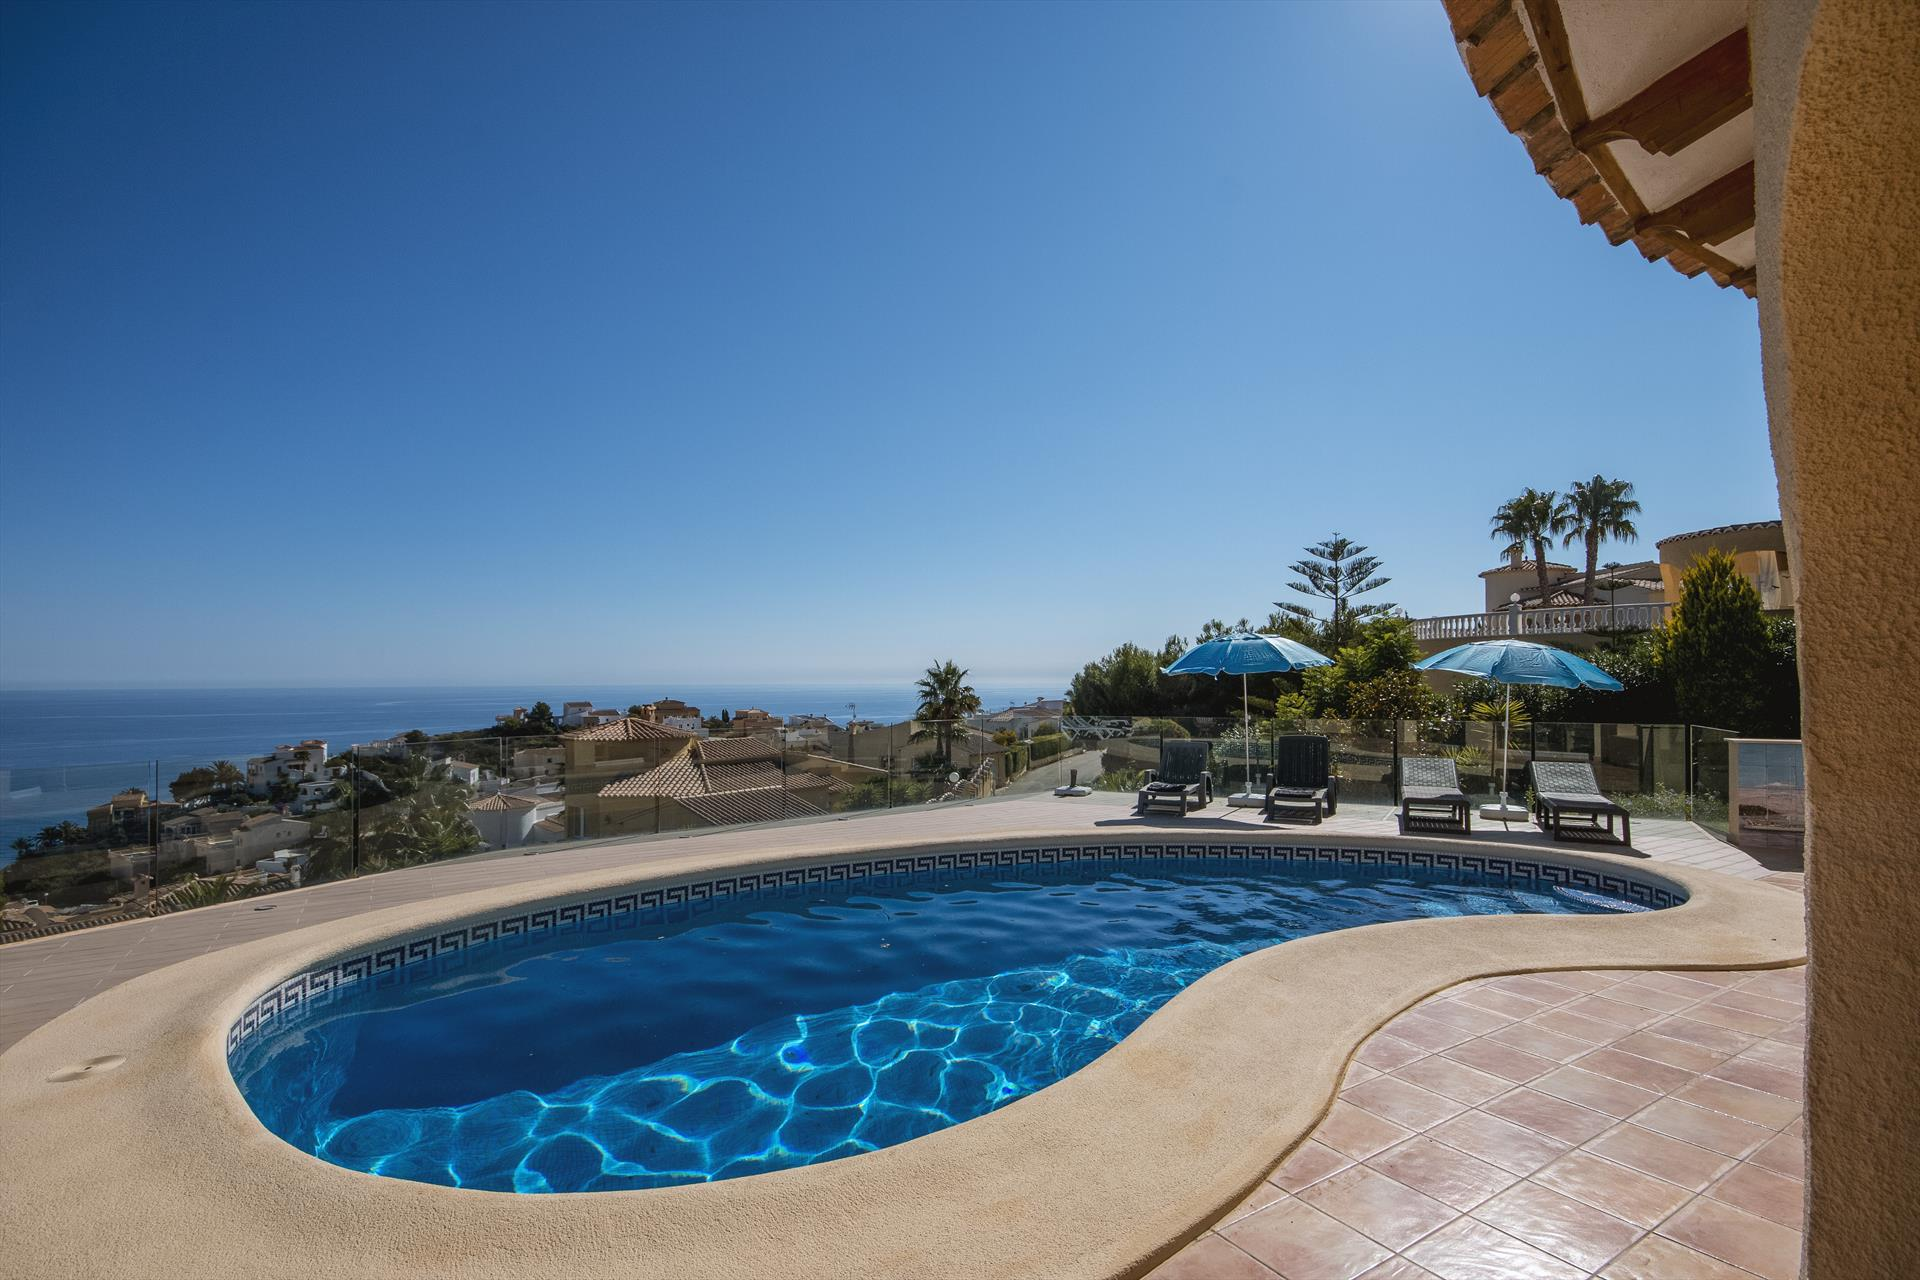 Carrevegas 6 pax, Large and nice villa in Benitachell, on the Costa Blanca, Spain  with private pool for 6 persons.....